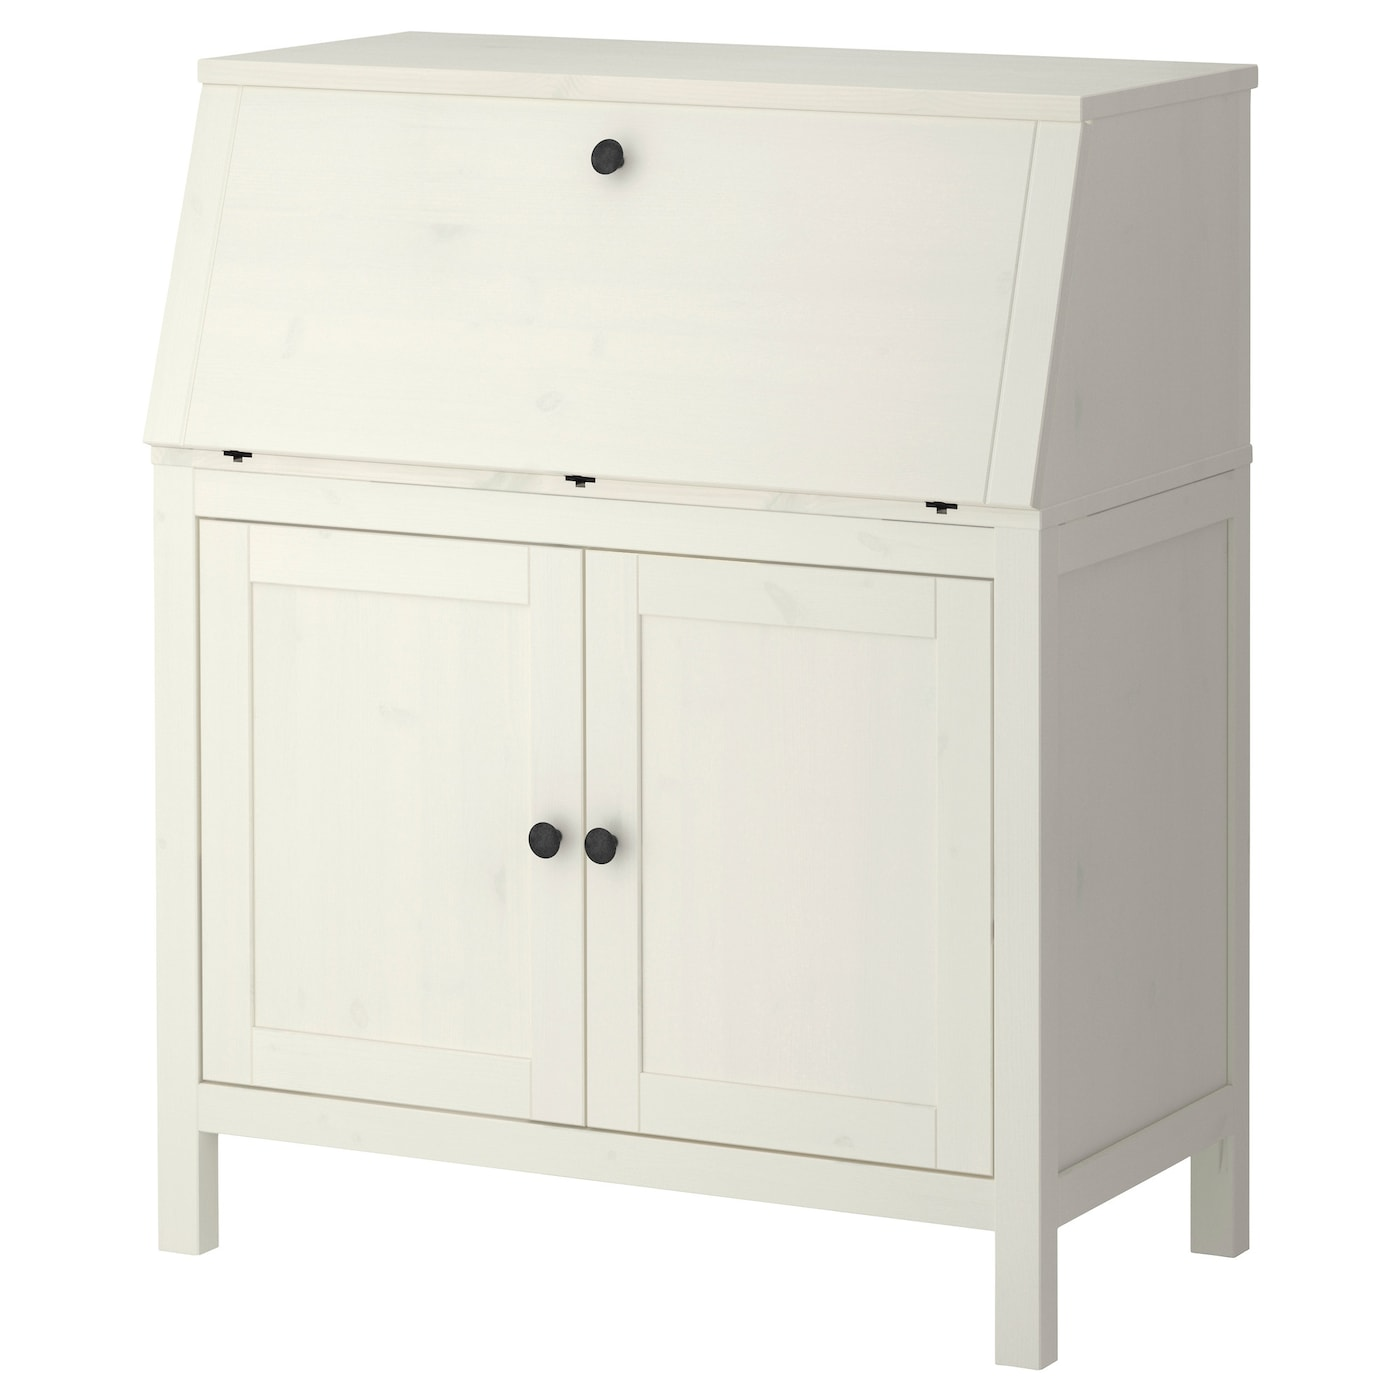 hemnes bureau white stain 89 x 108 cm ikea. Black Bedroom Furniture Sets. Home Design Ideas